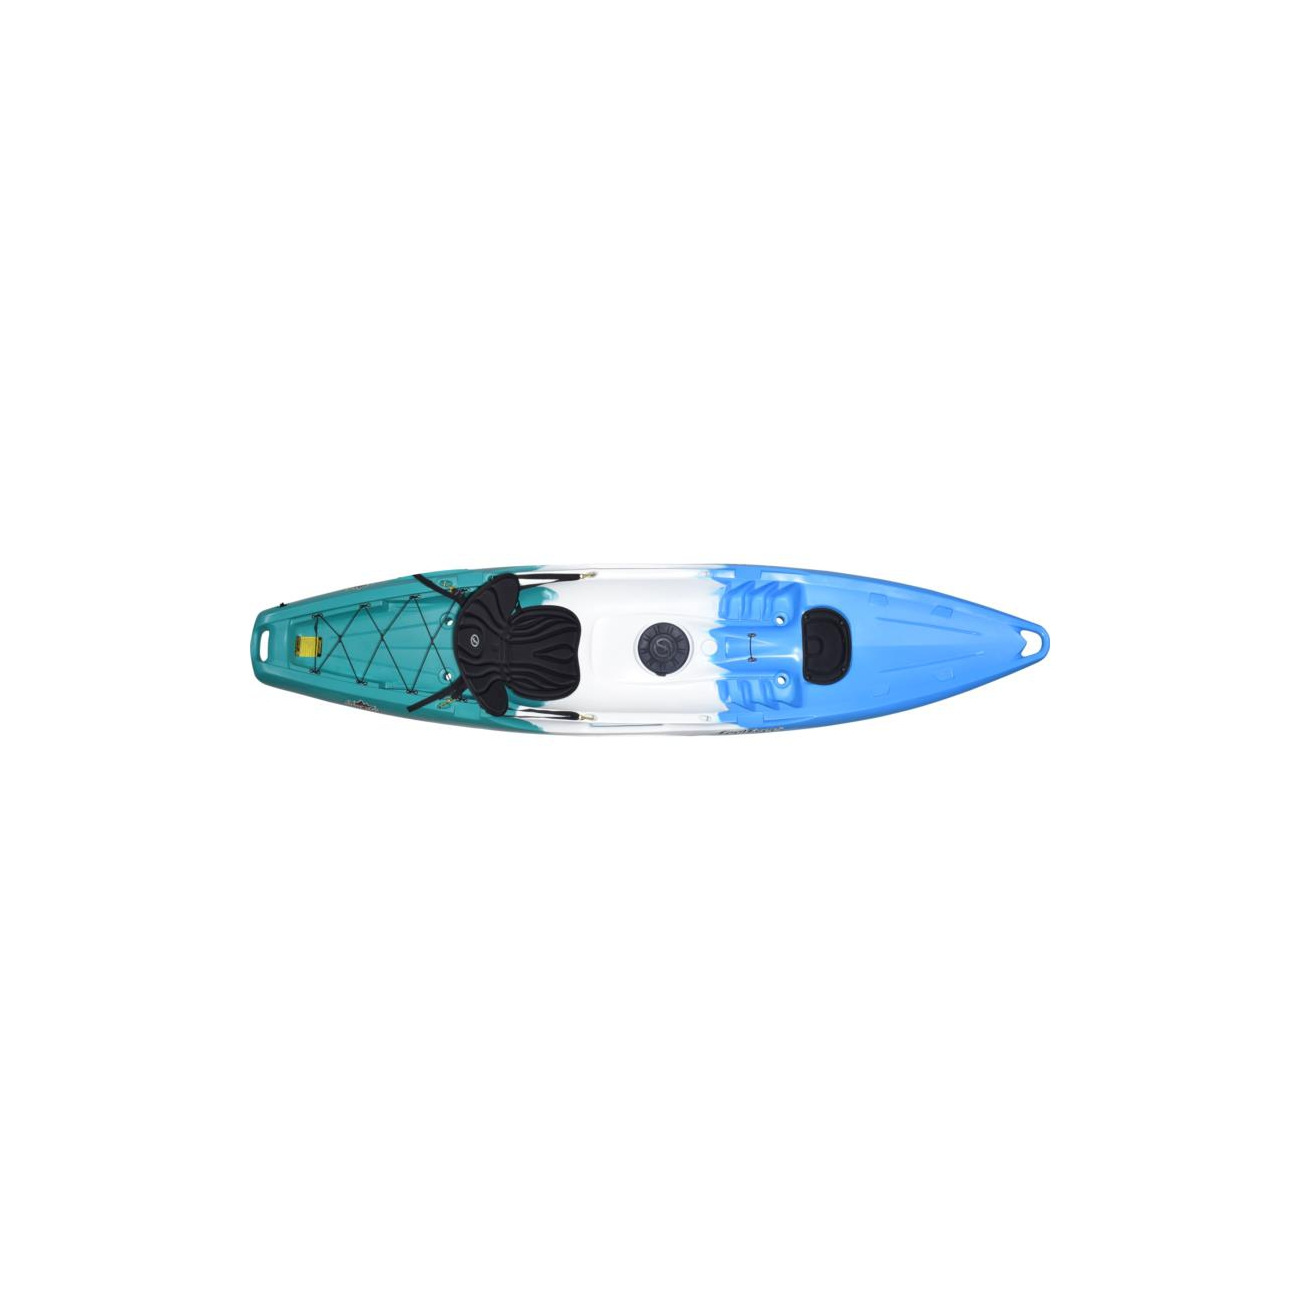 https://feelfreekayak.eu/608-small_default/juntos-ice-cool-light-blue-white-teal.jpg